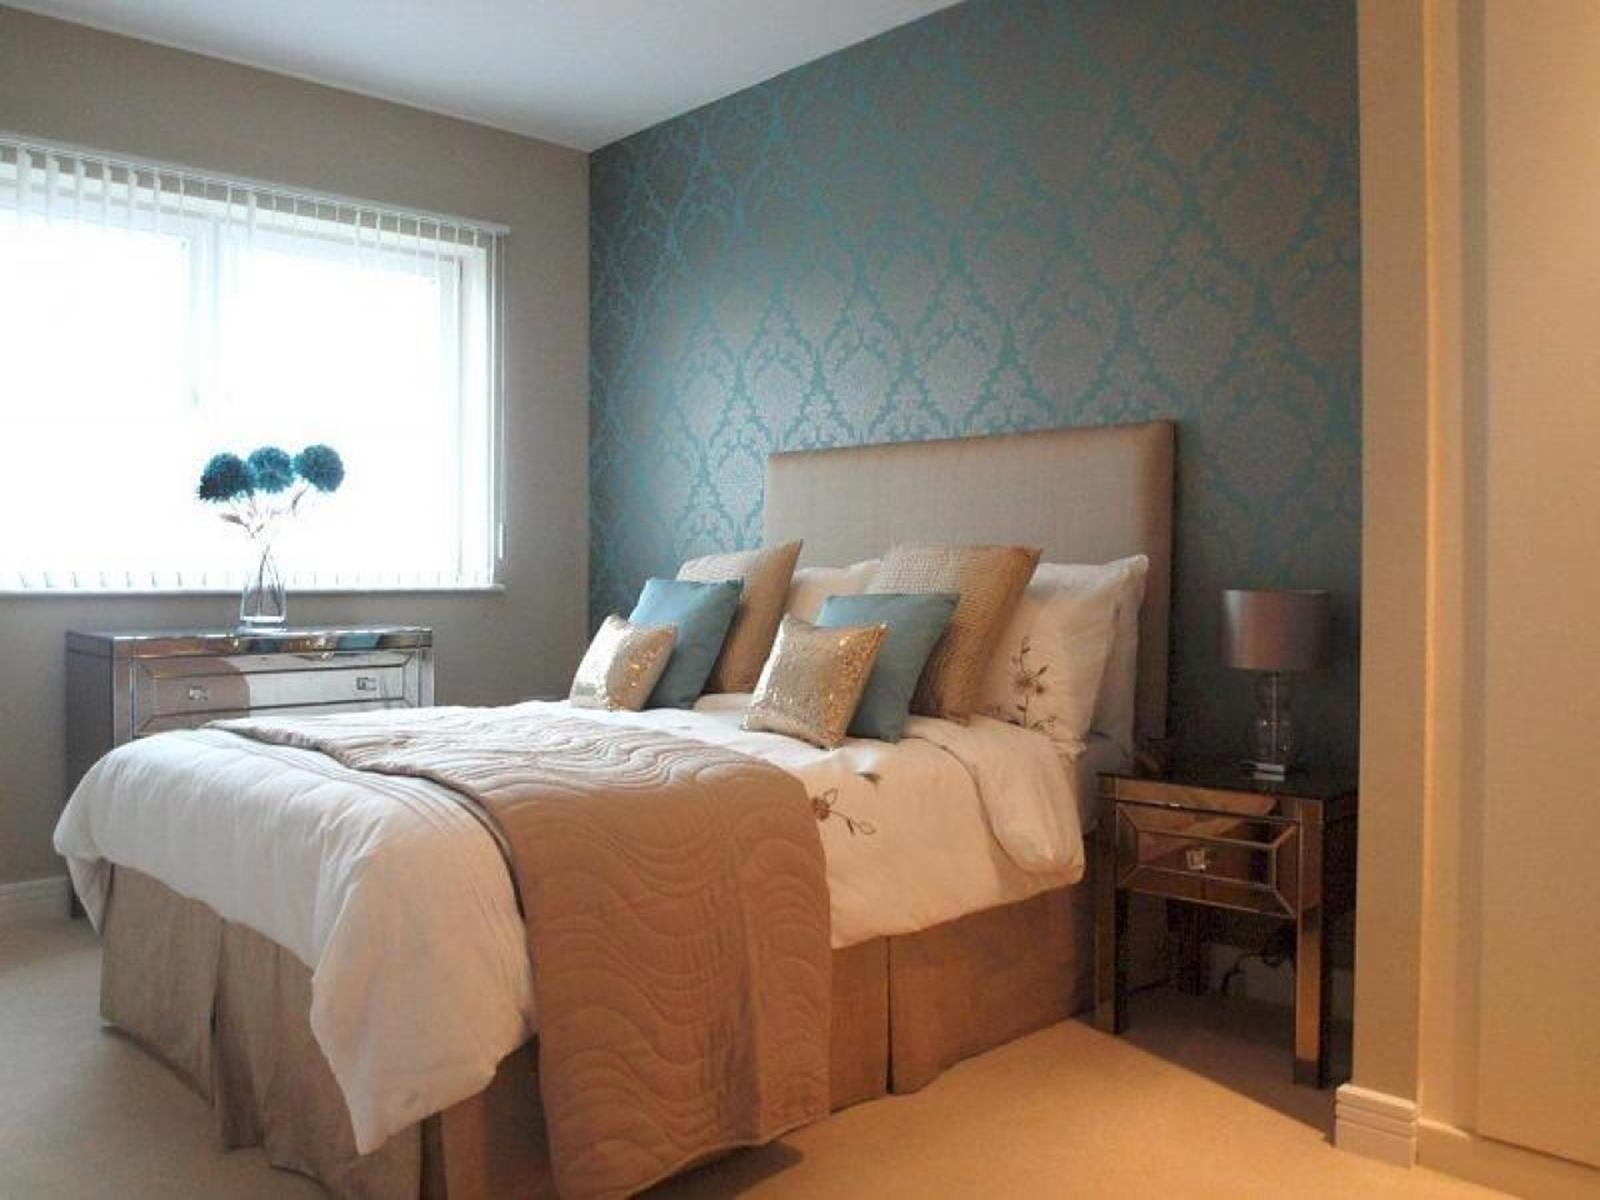 37 charming blue and beige bedrooms decorating ideas decorelated Blue and tan bedroom decorating ideas